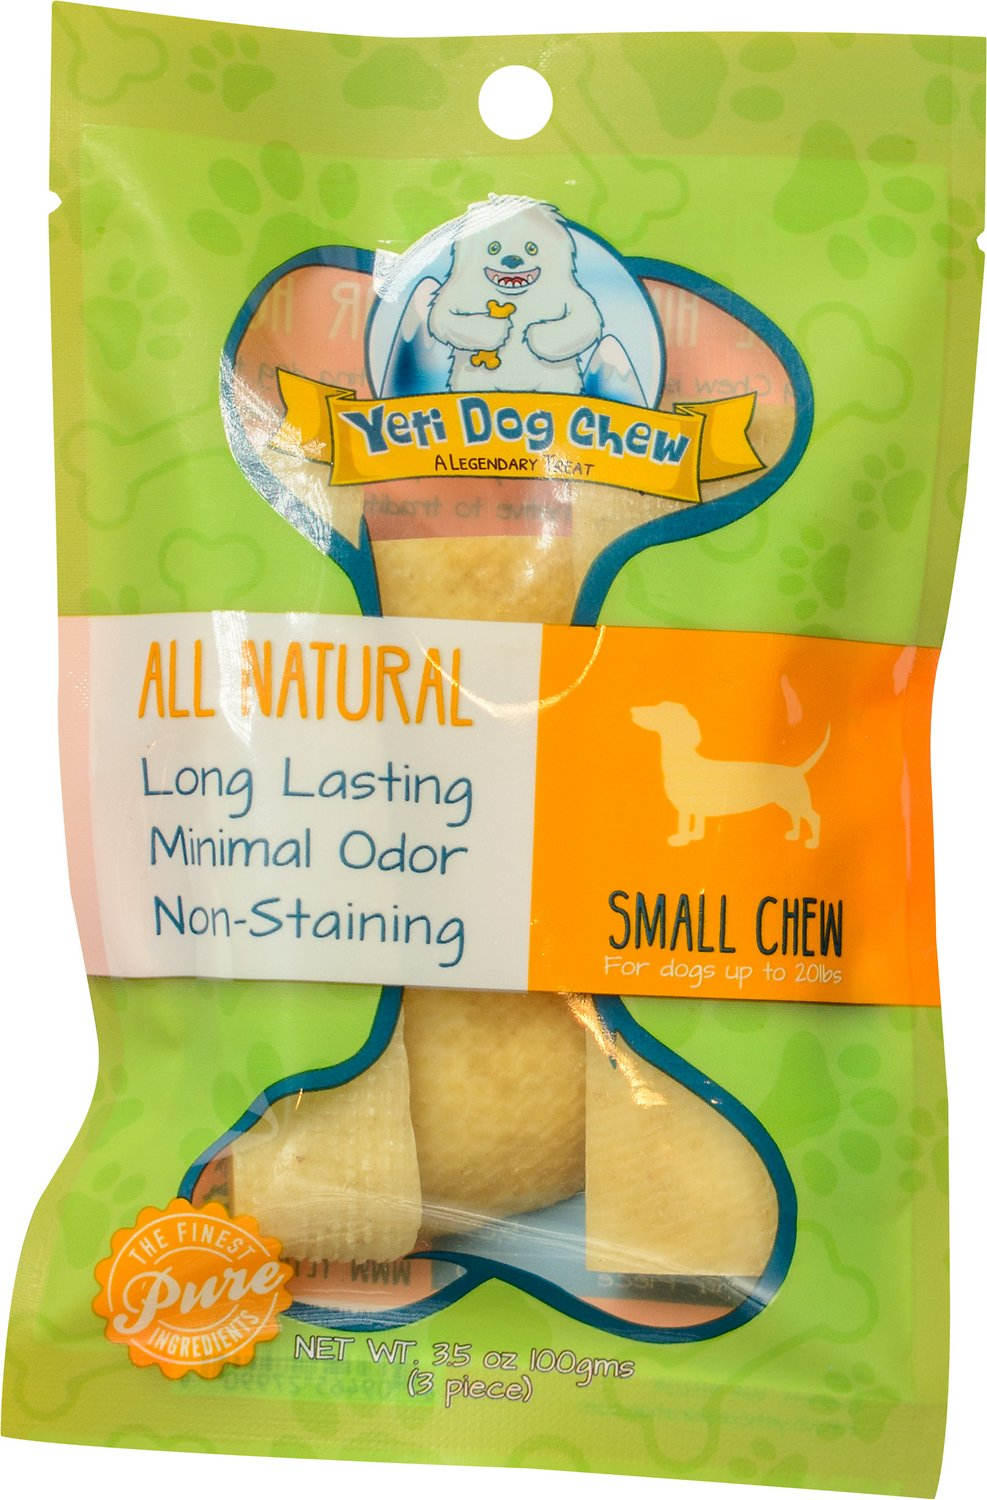 Yeti Dog Chew Small Himalayan Cheese Packaged Dog Treats, 3-count (Size: 3-count) Image